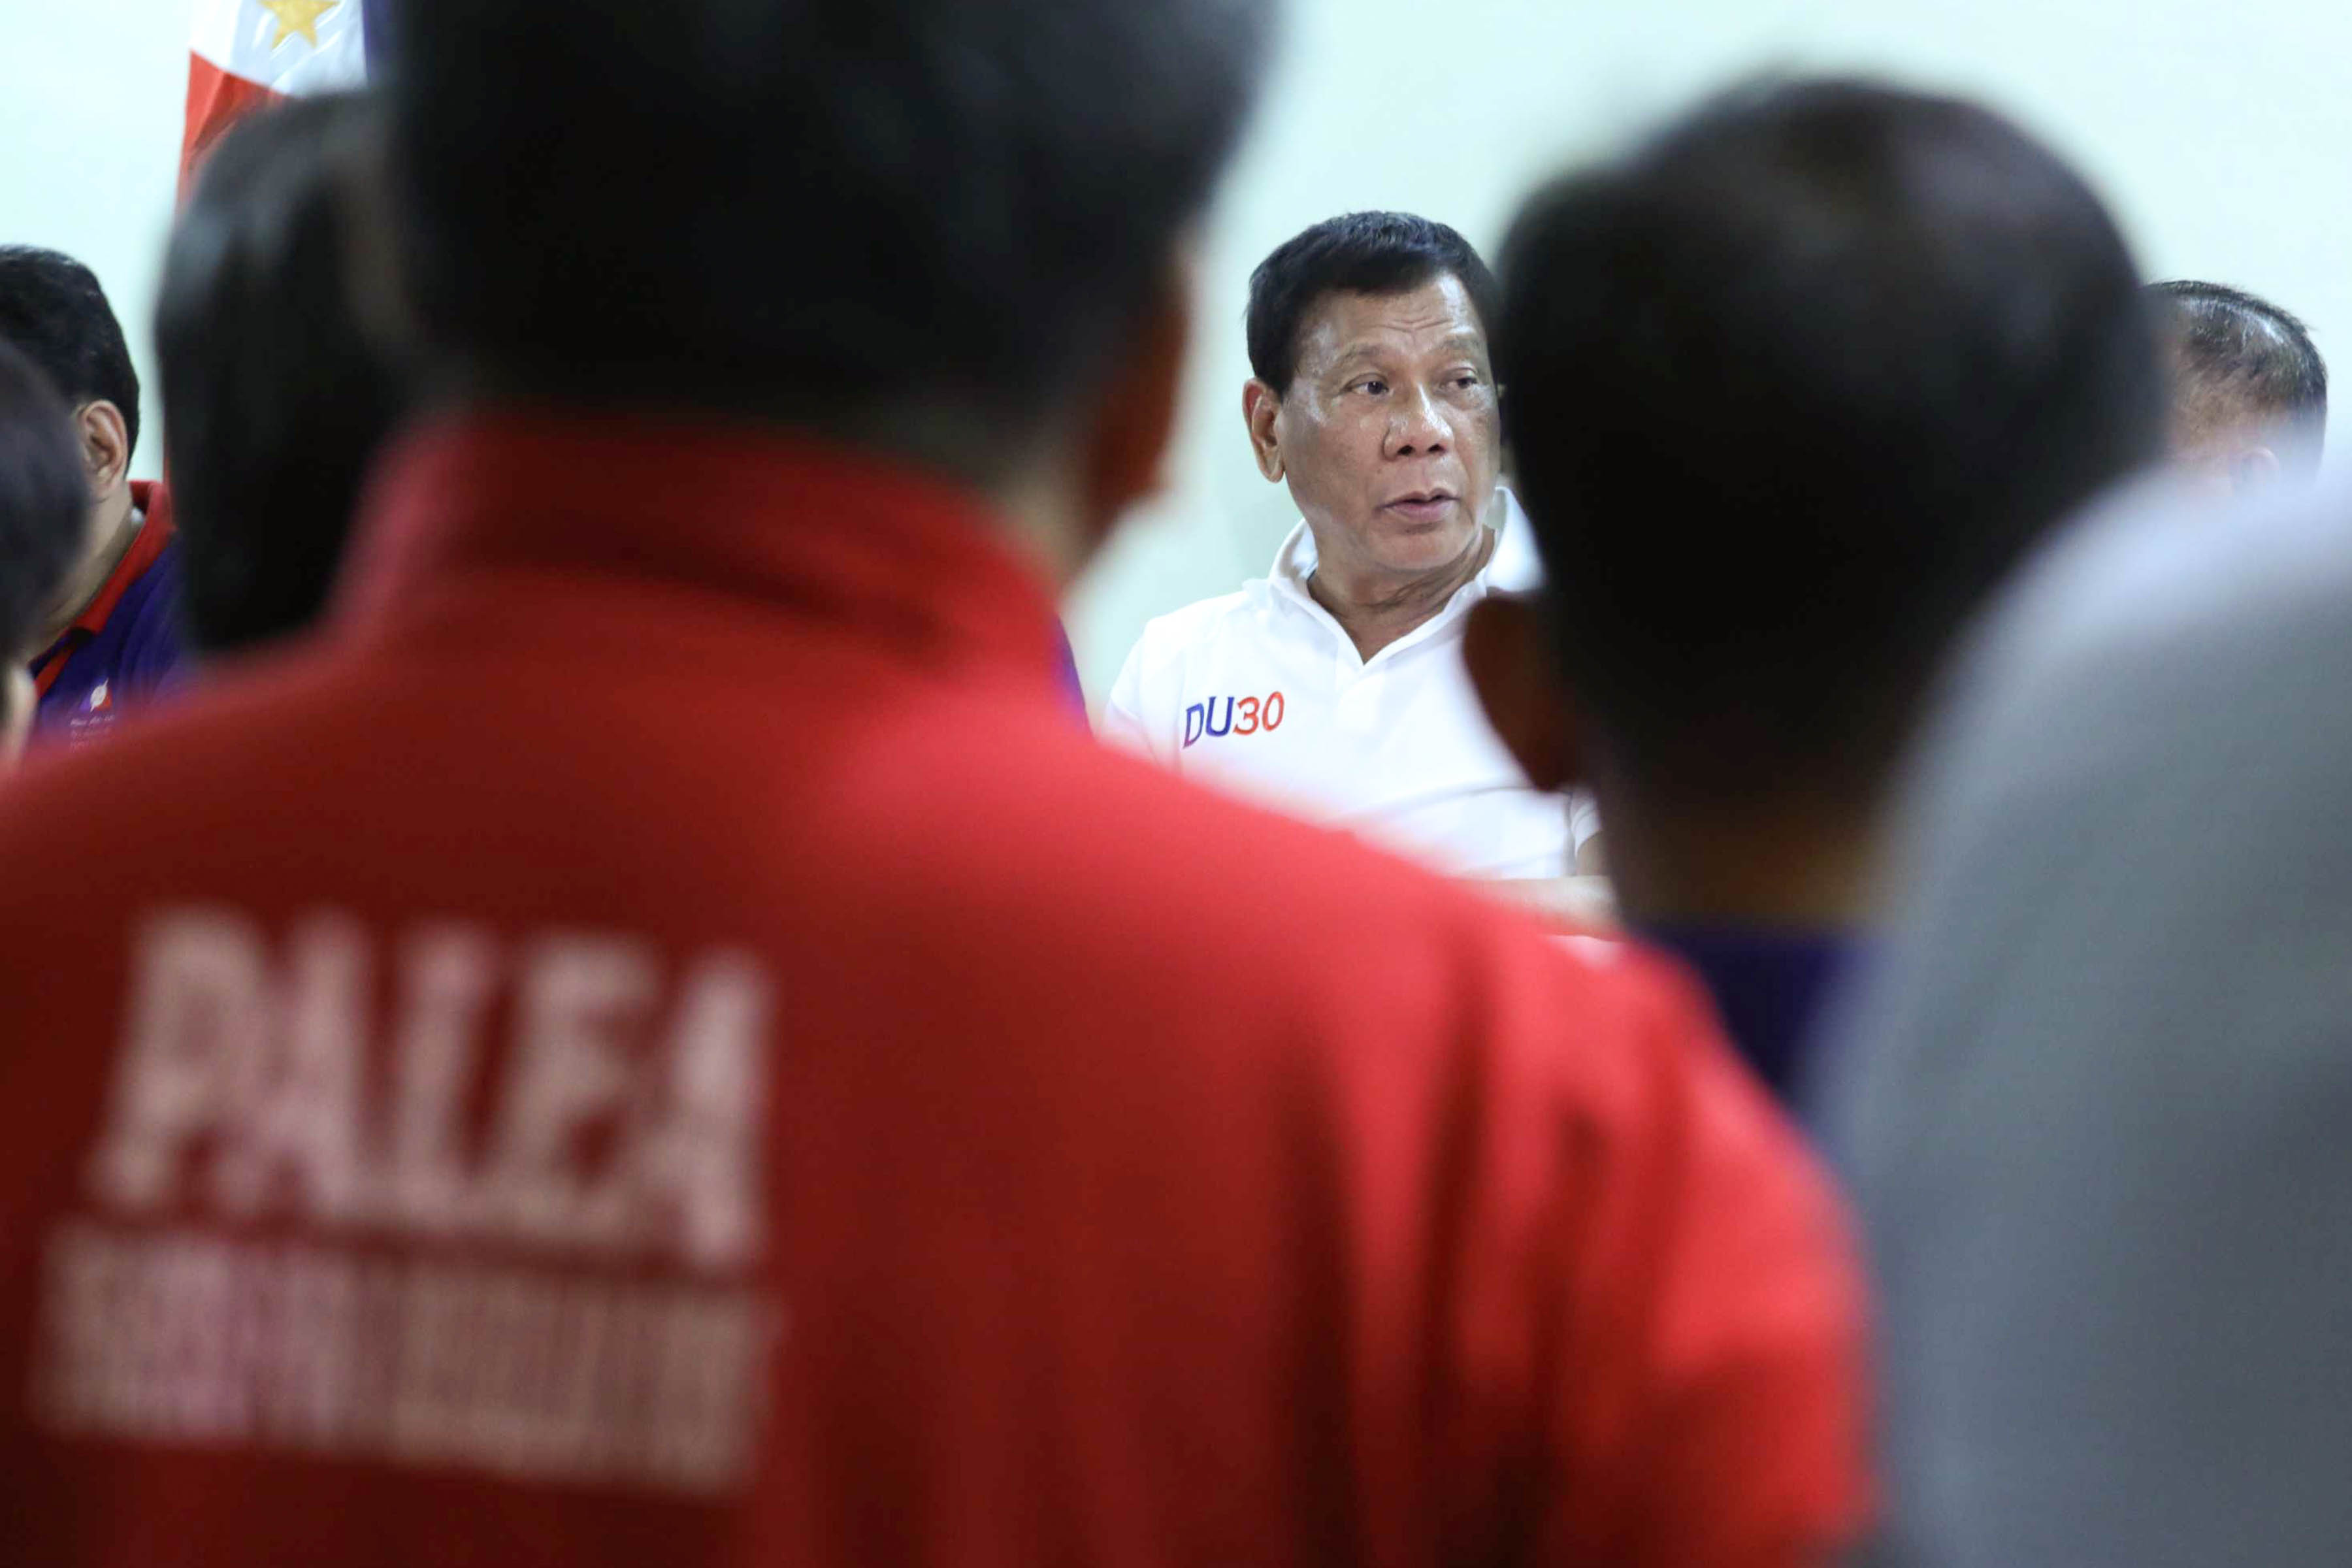 AGAINST OLIGARCHS. Prior to his Labor Day speech, the President met with leaders from various labor organizations to discuss contractualization. Presidential photo